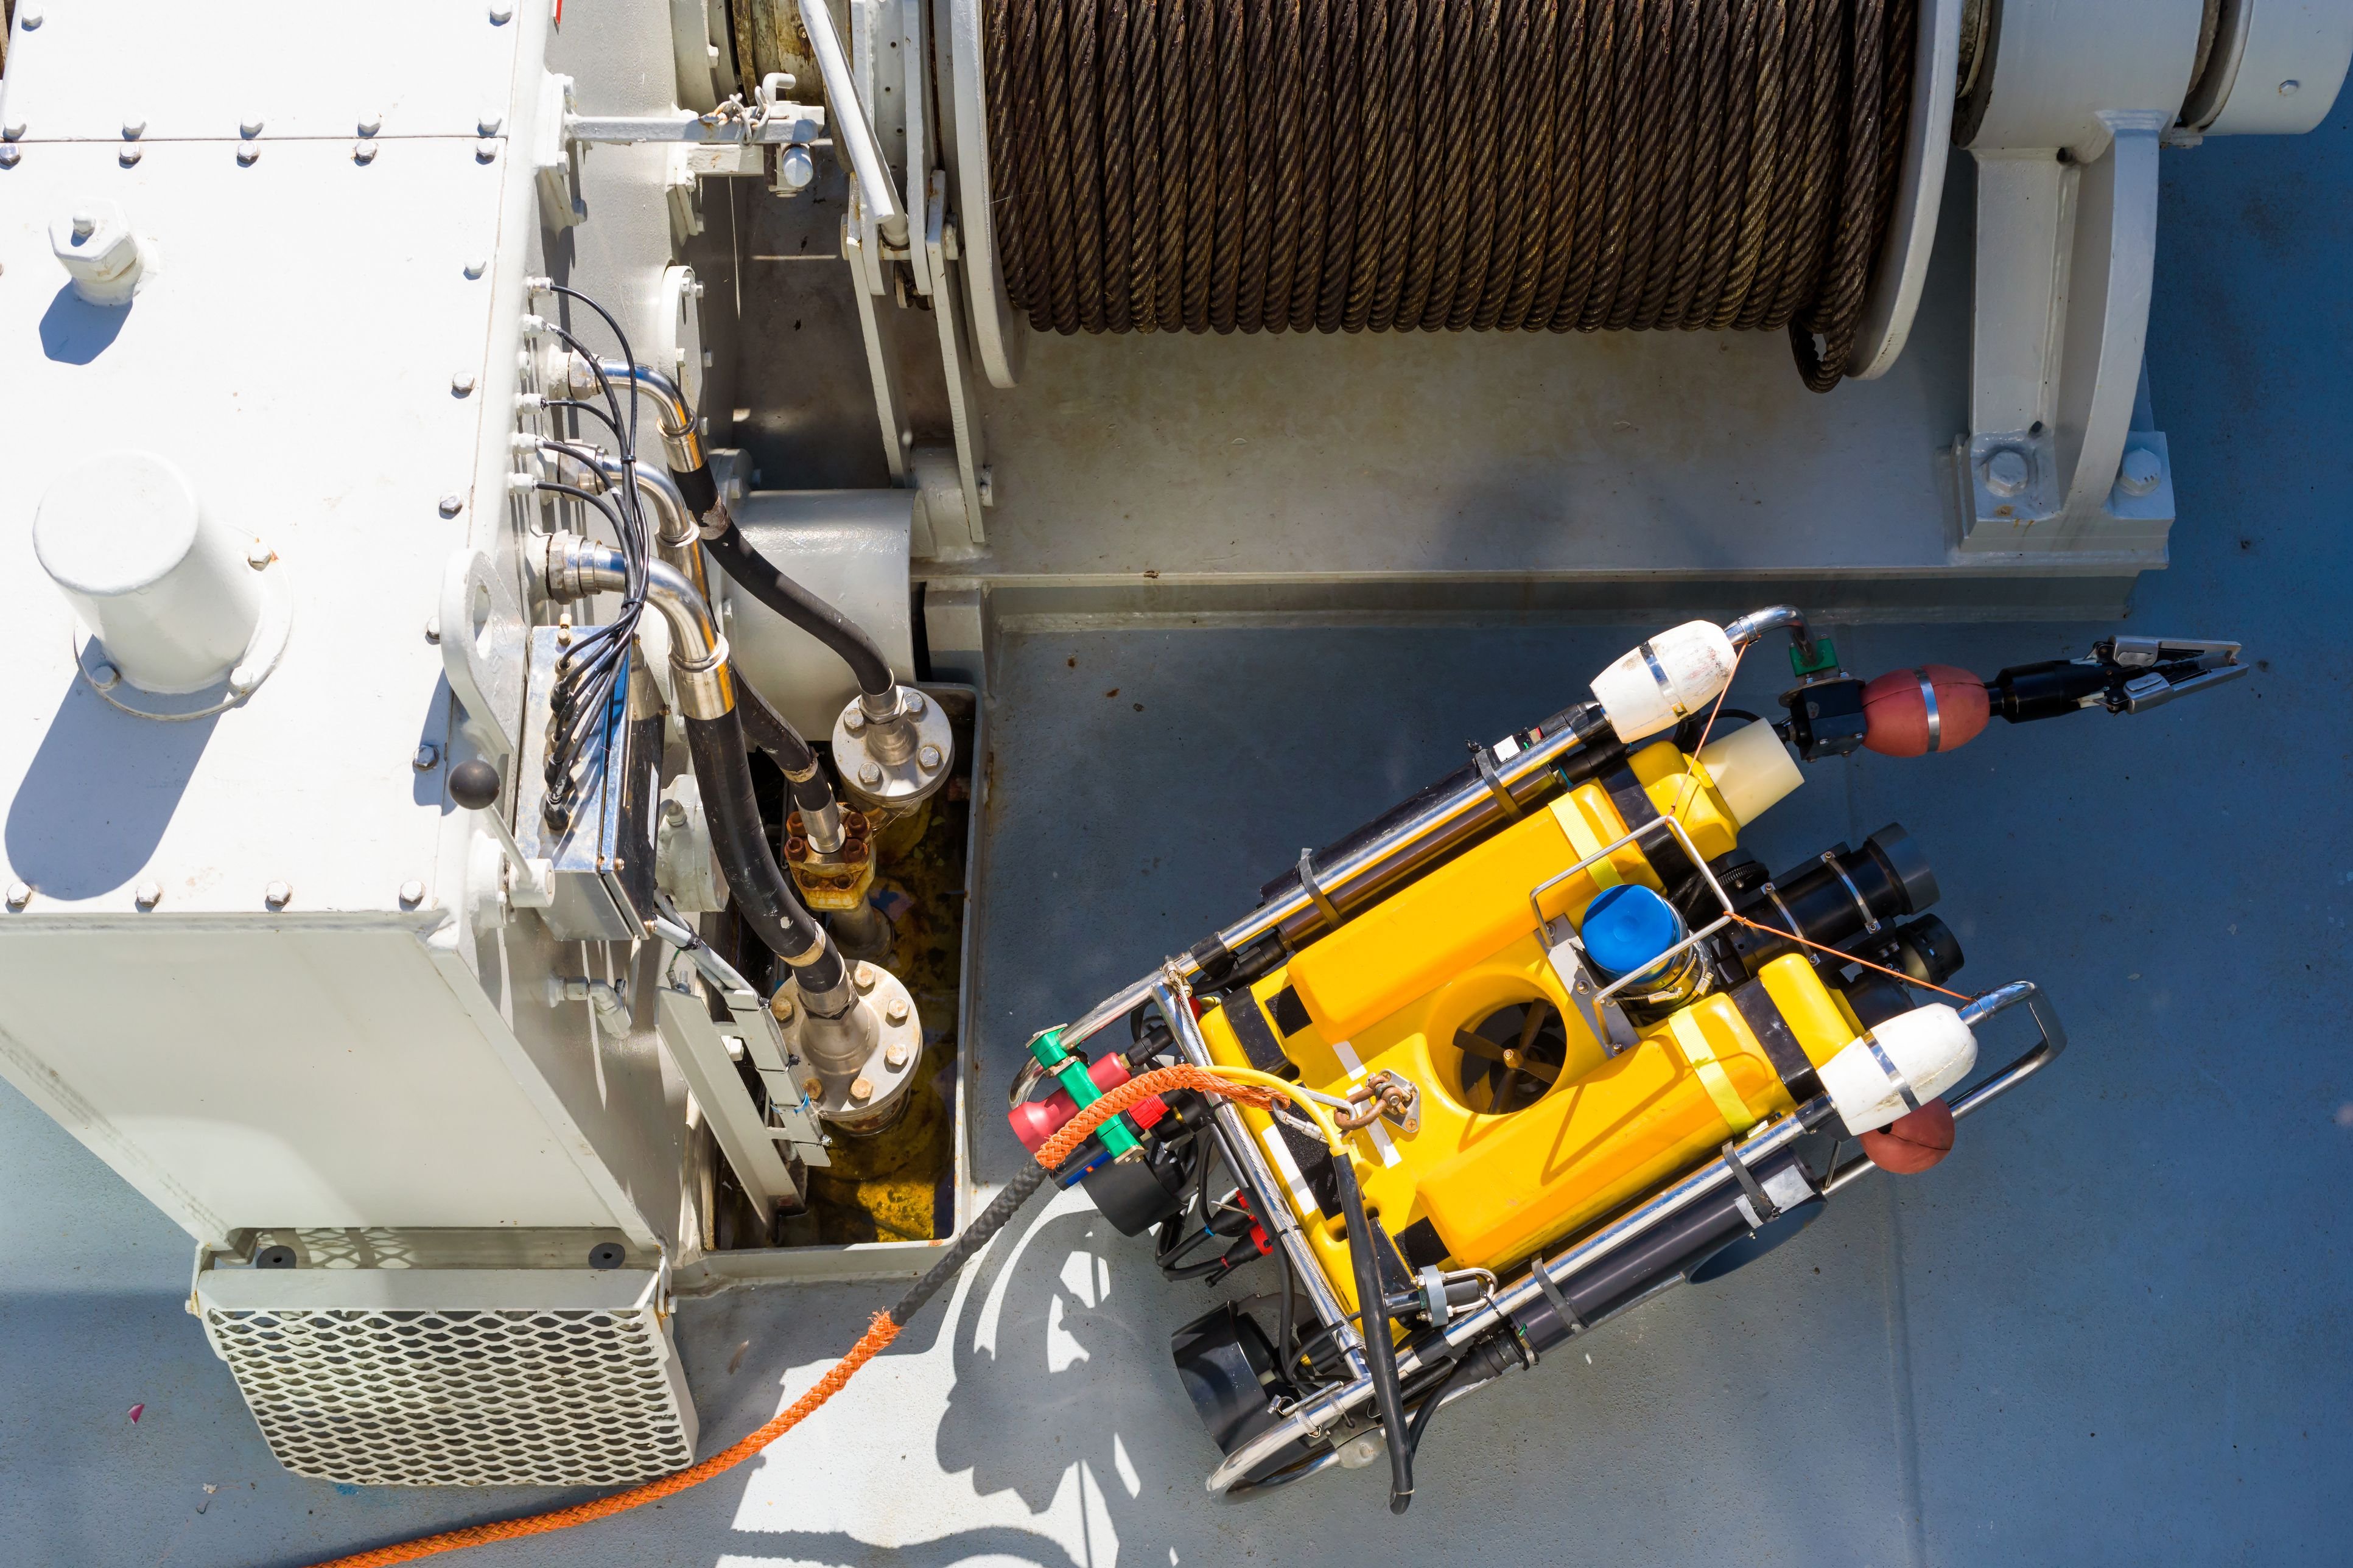 Remote Operated Vehicles (ROVs)